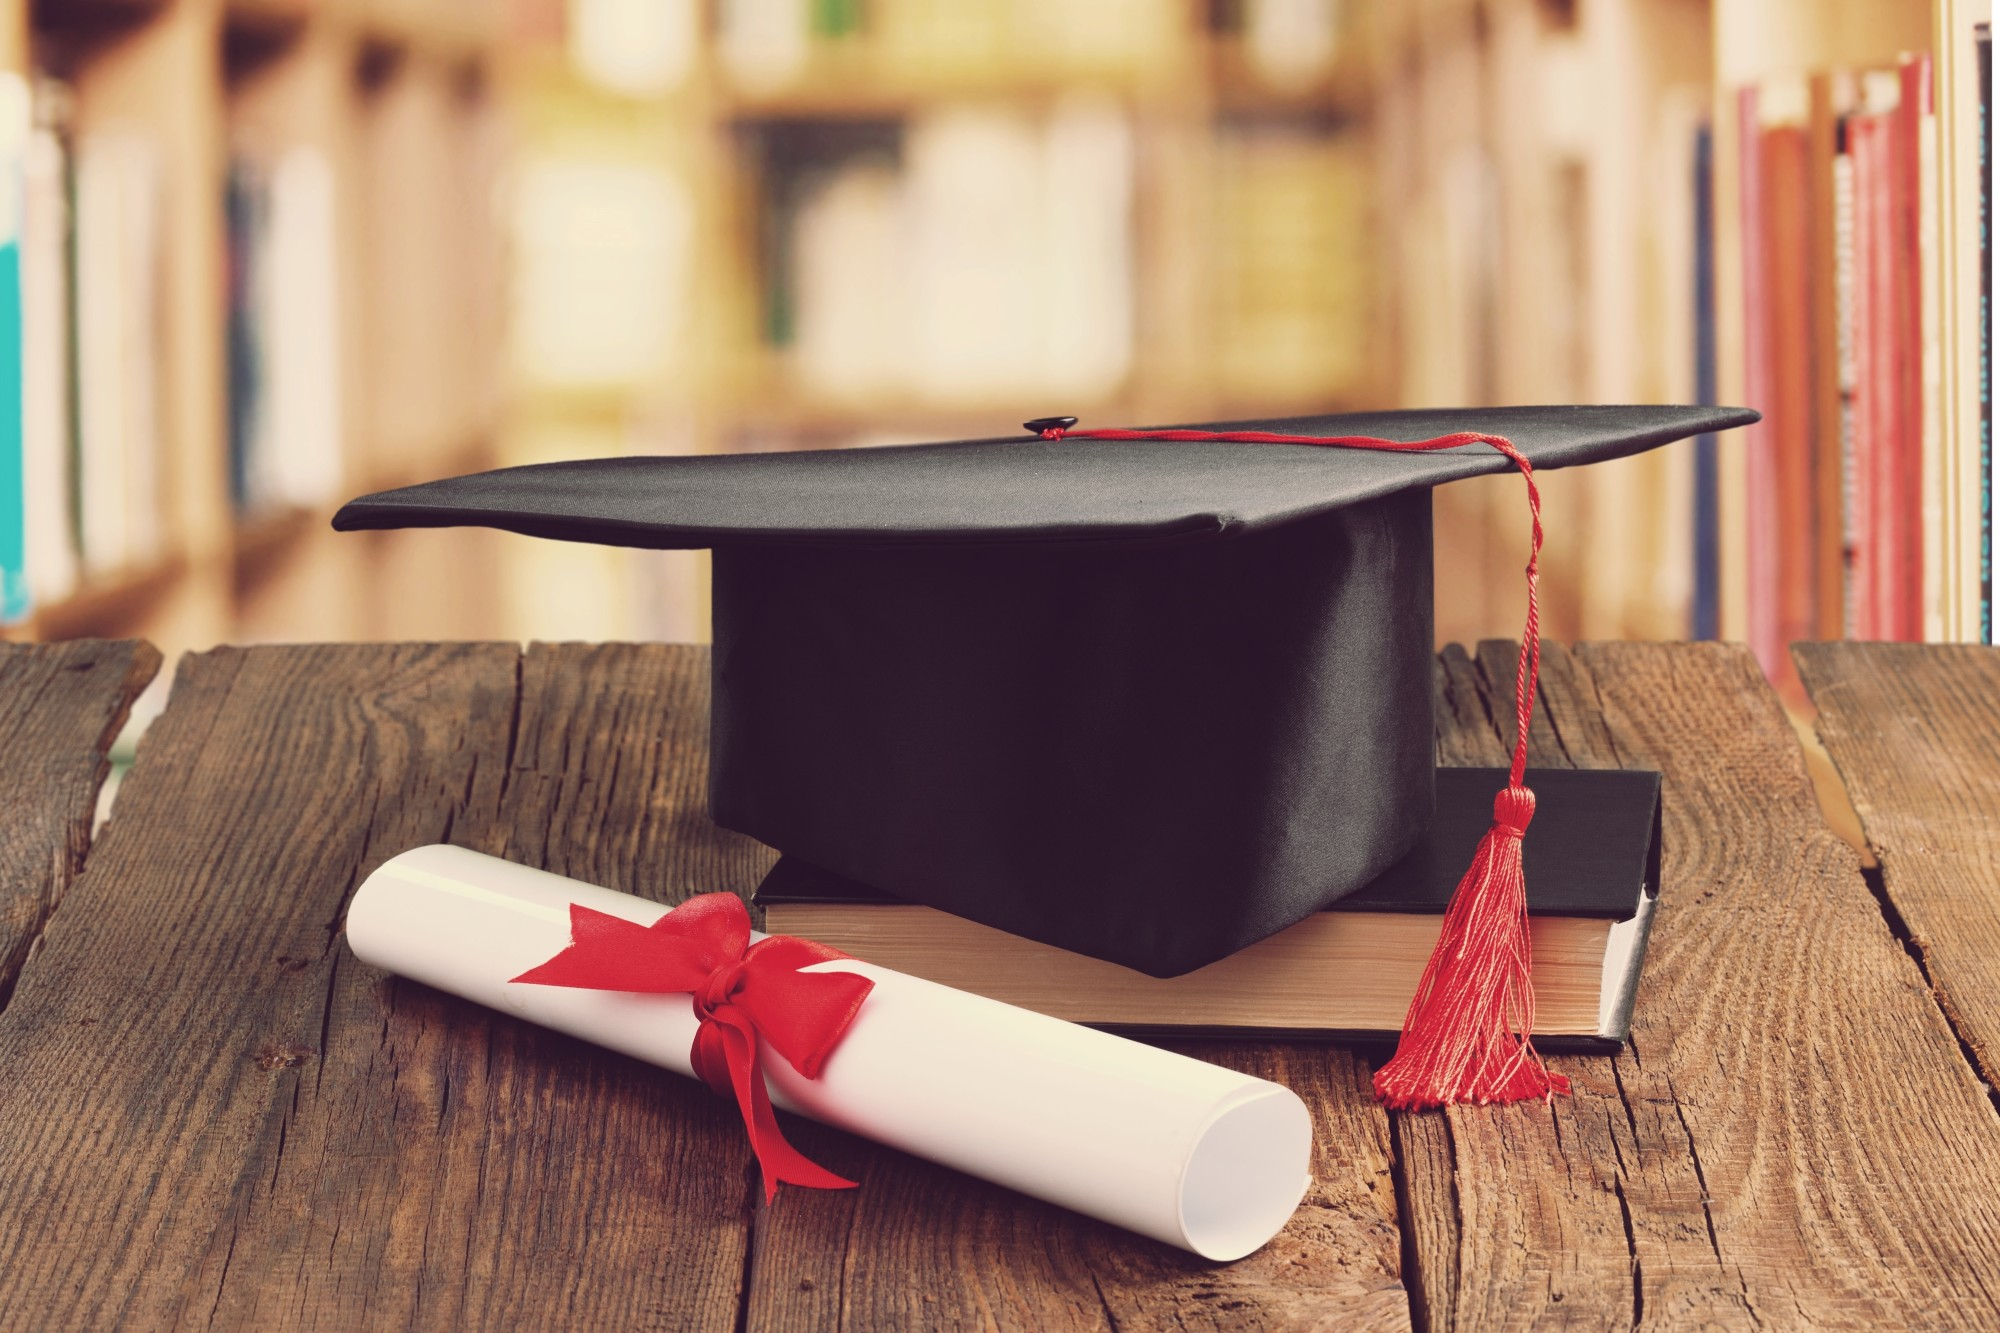 How to Get a Copy of Your College Diploma If the College or University Is Closed